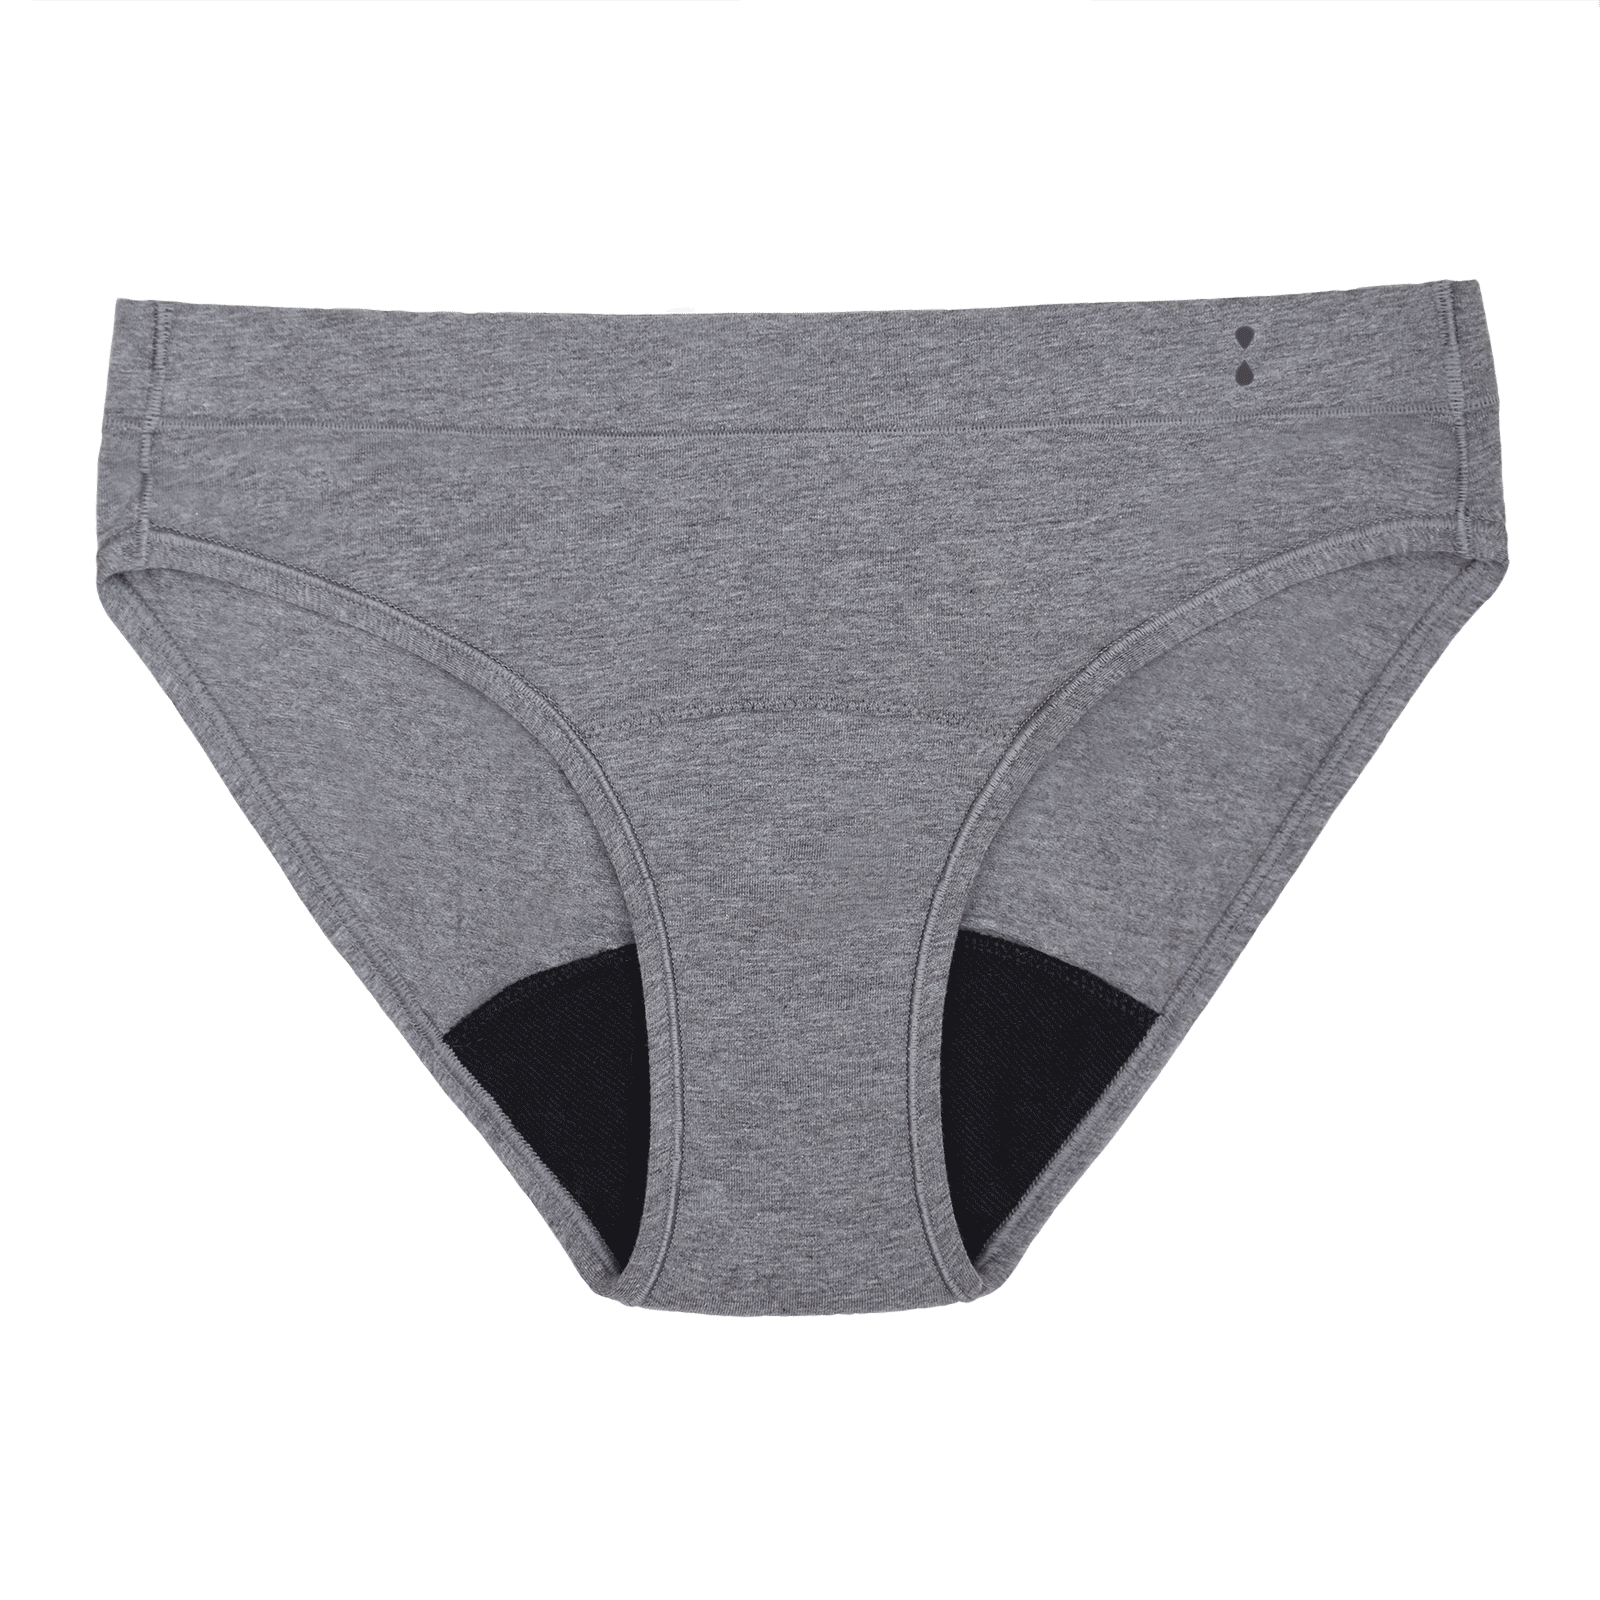 thinx for all